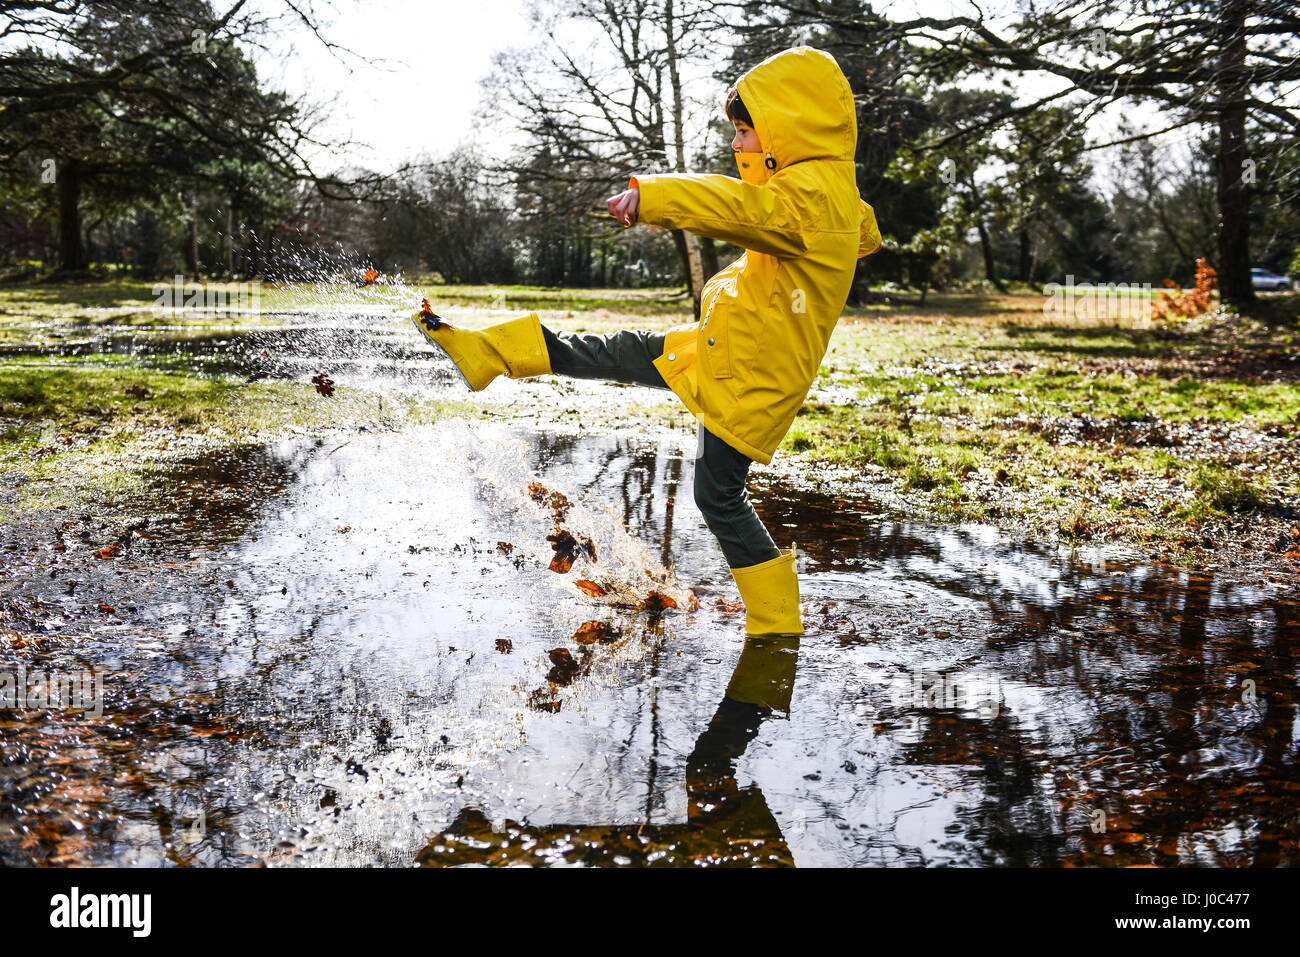 Garçon en anorak jaune splashing in park flaque Photo Stock